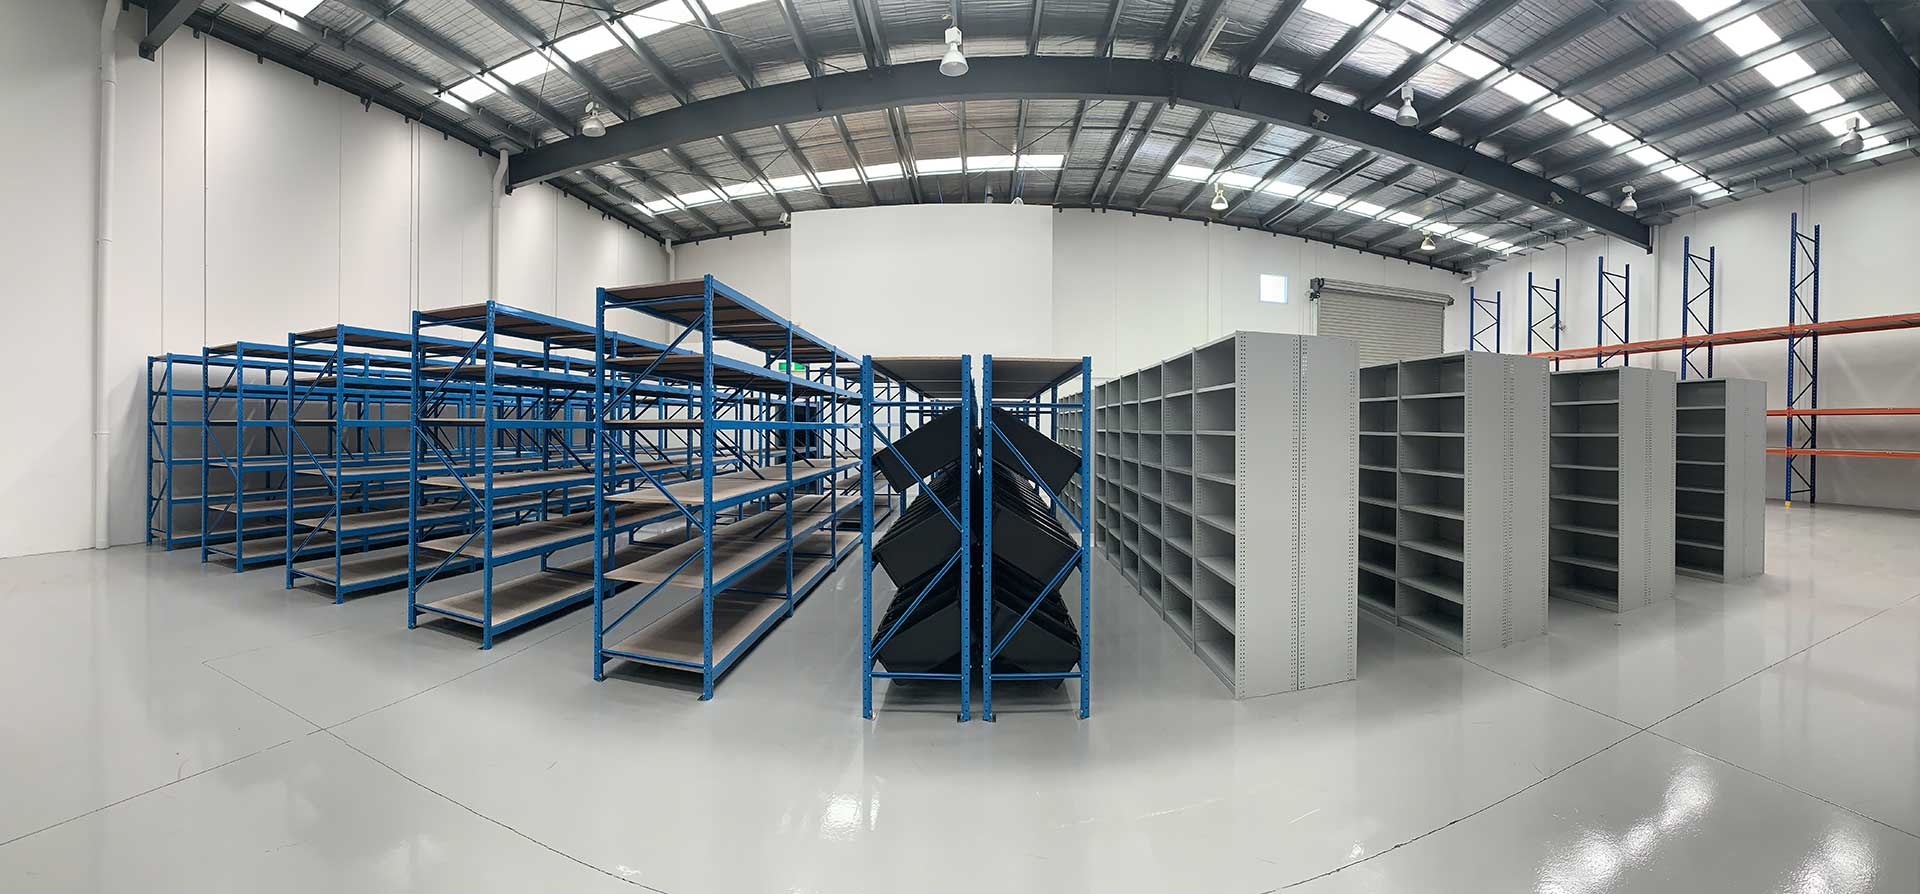 Highly Durable Industrial Shelving Units in Melbourne